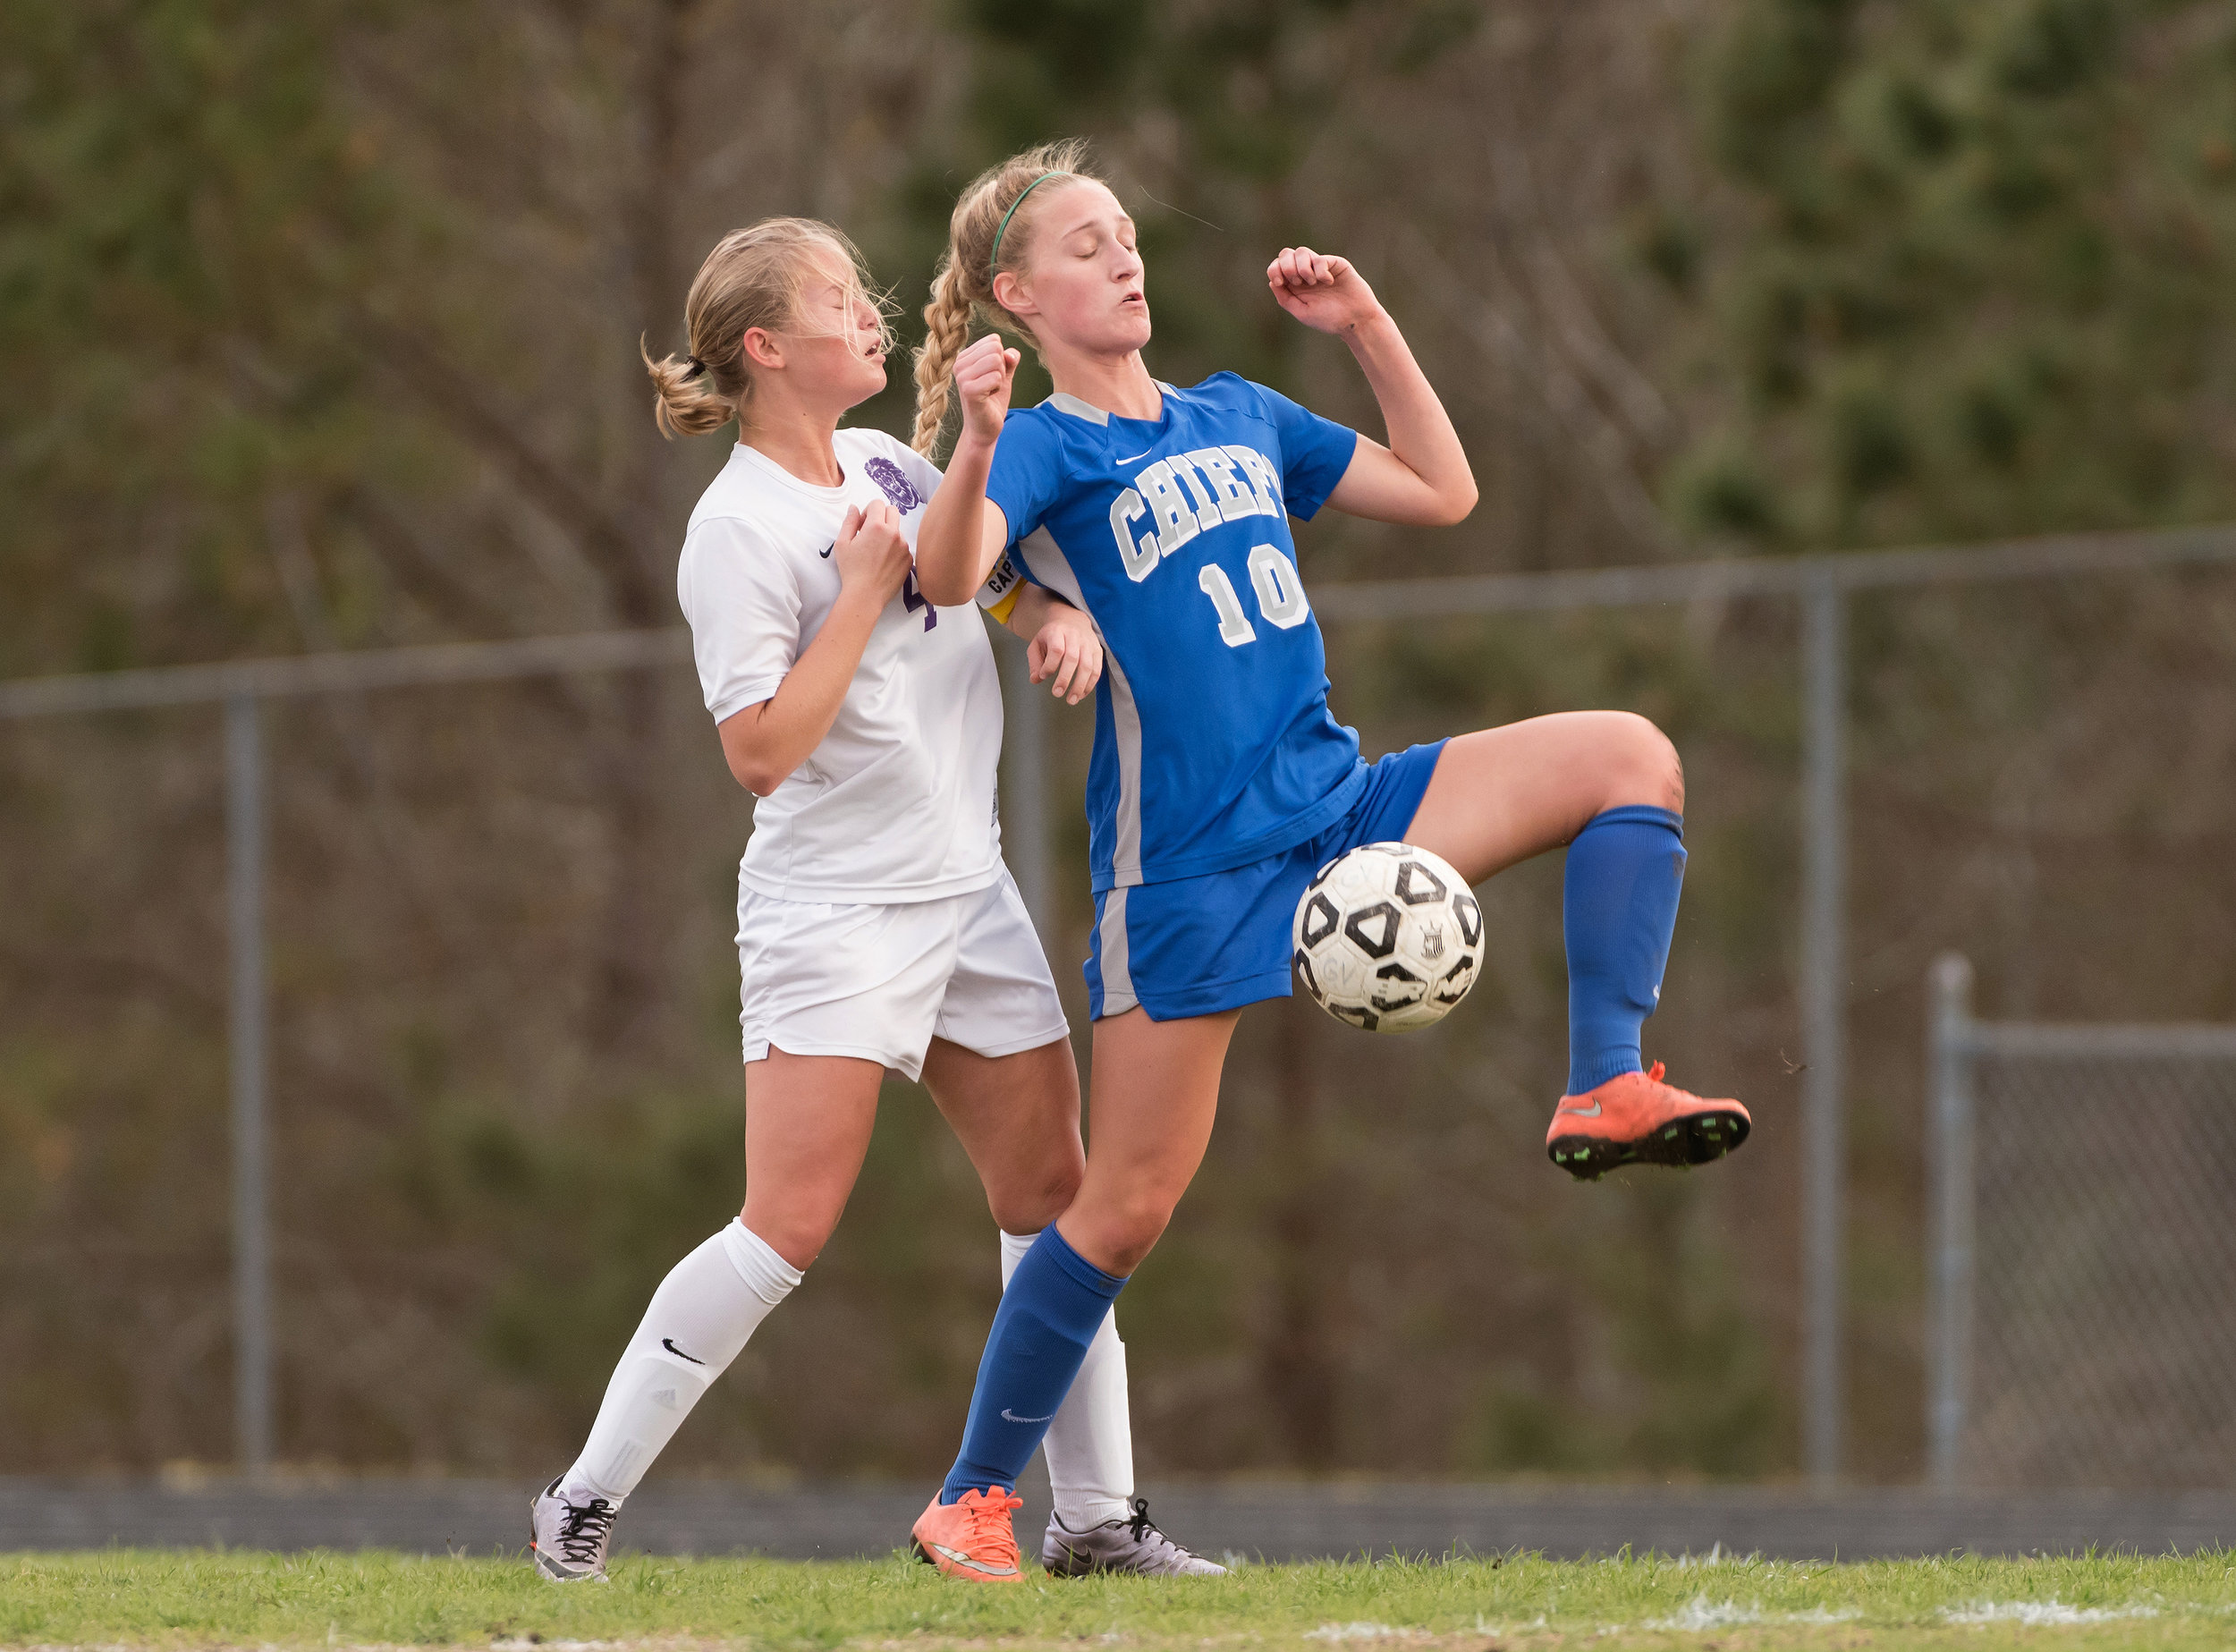 Kempsville midfielder Bethany Fall (10) works to keep the ball away from Tallwood midfielder Haley Rolince (4) during Monday night's game at Tallwood High School. Kempsville defeated Tallwood 2-0.